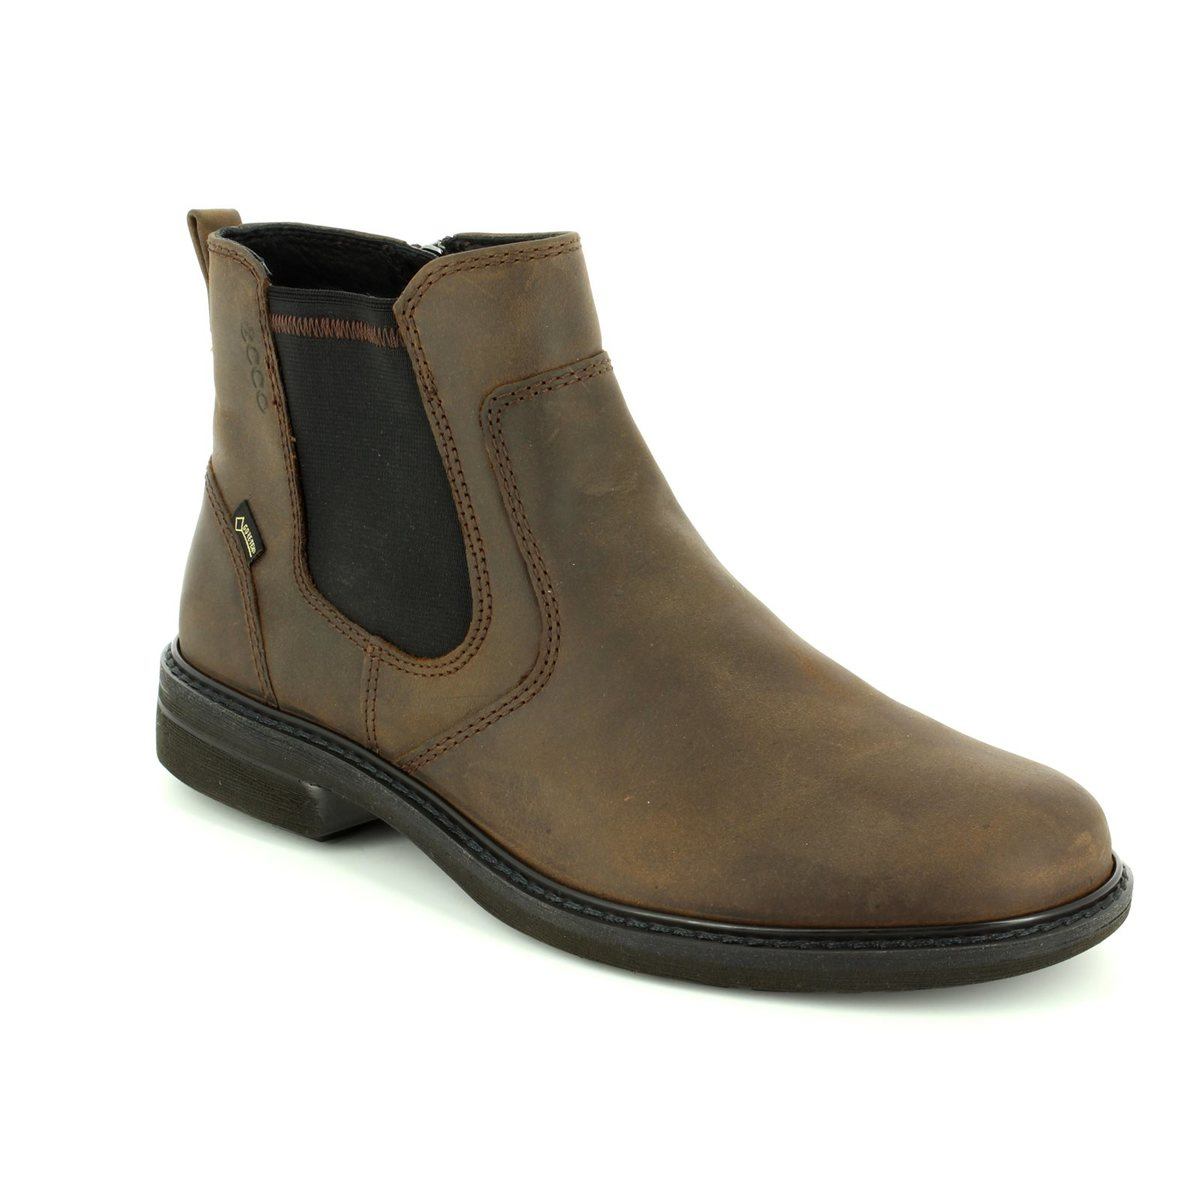 1d7399d3 510214/02482 Turn Gore-tex at Begg Shoes & Bags